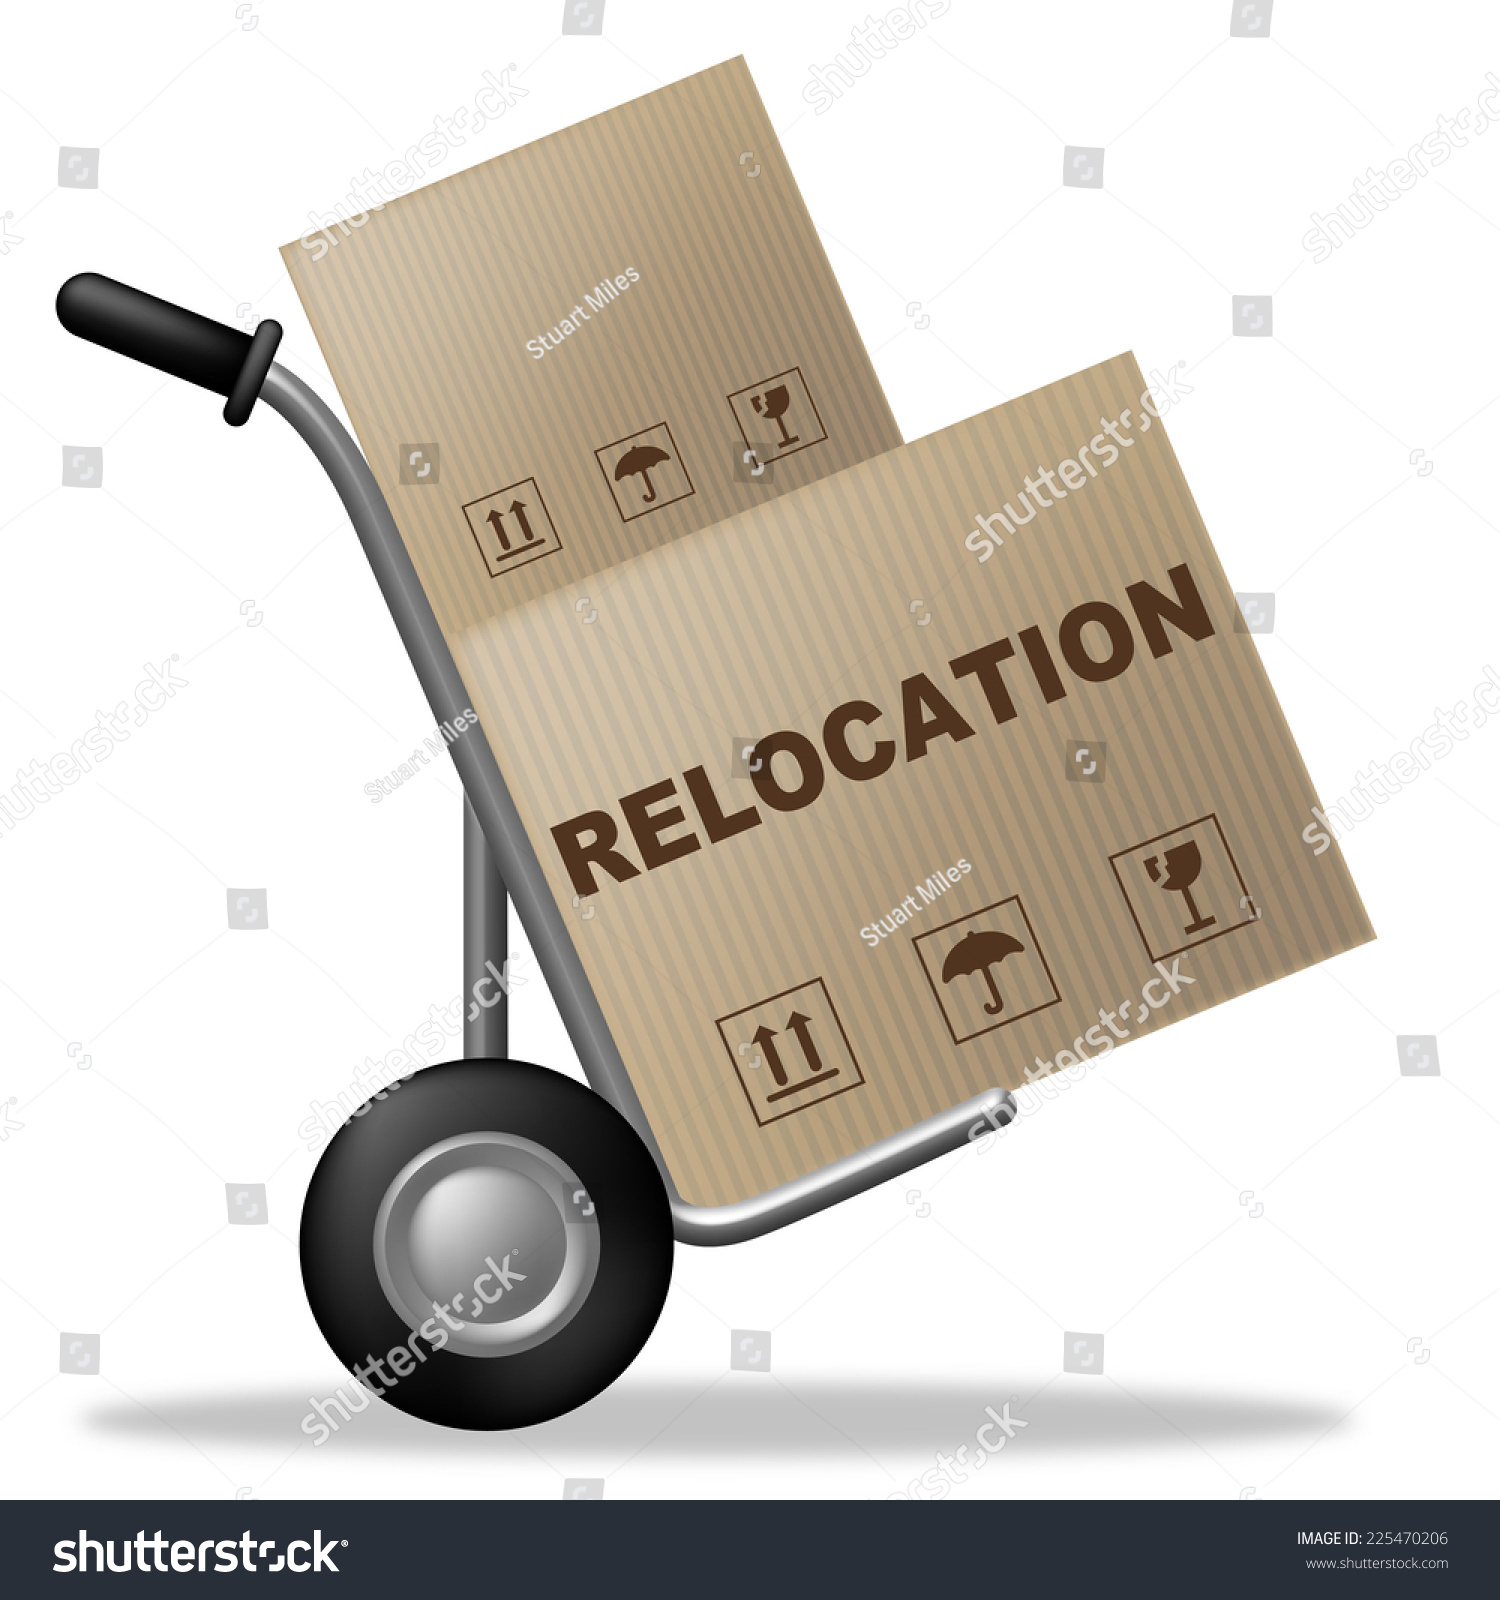 relocation package showing change address moving stock relocation package showing change of address and moving